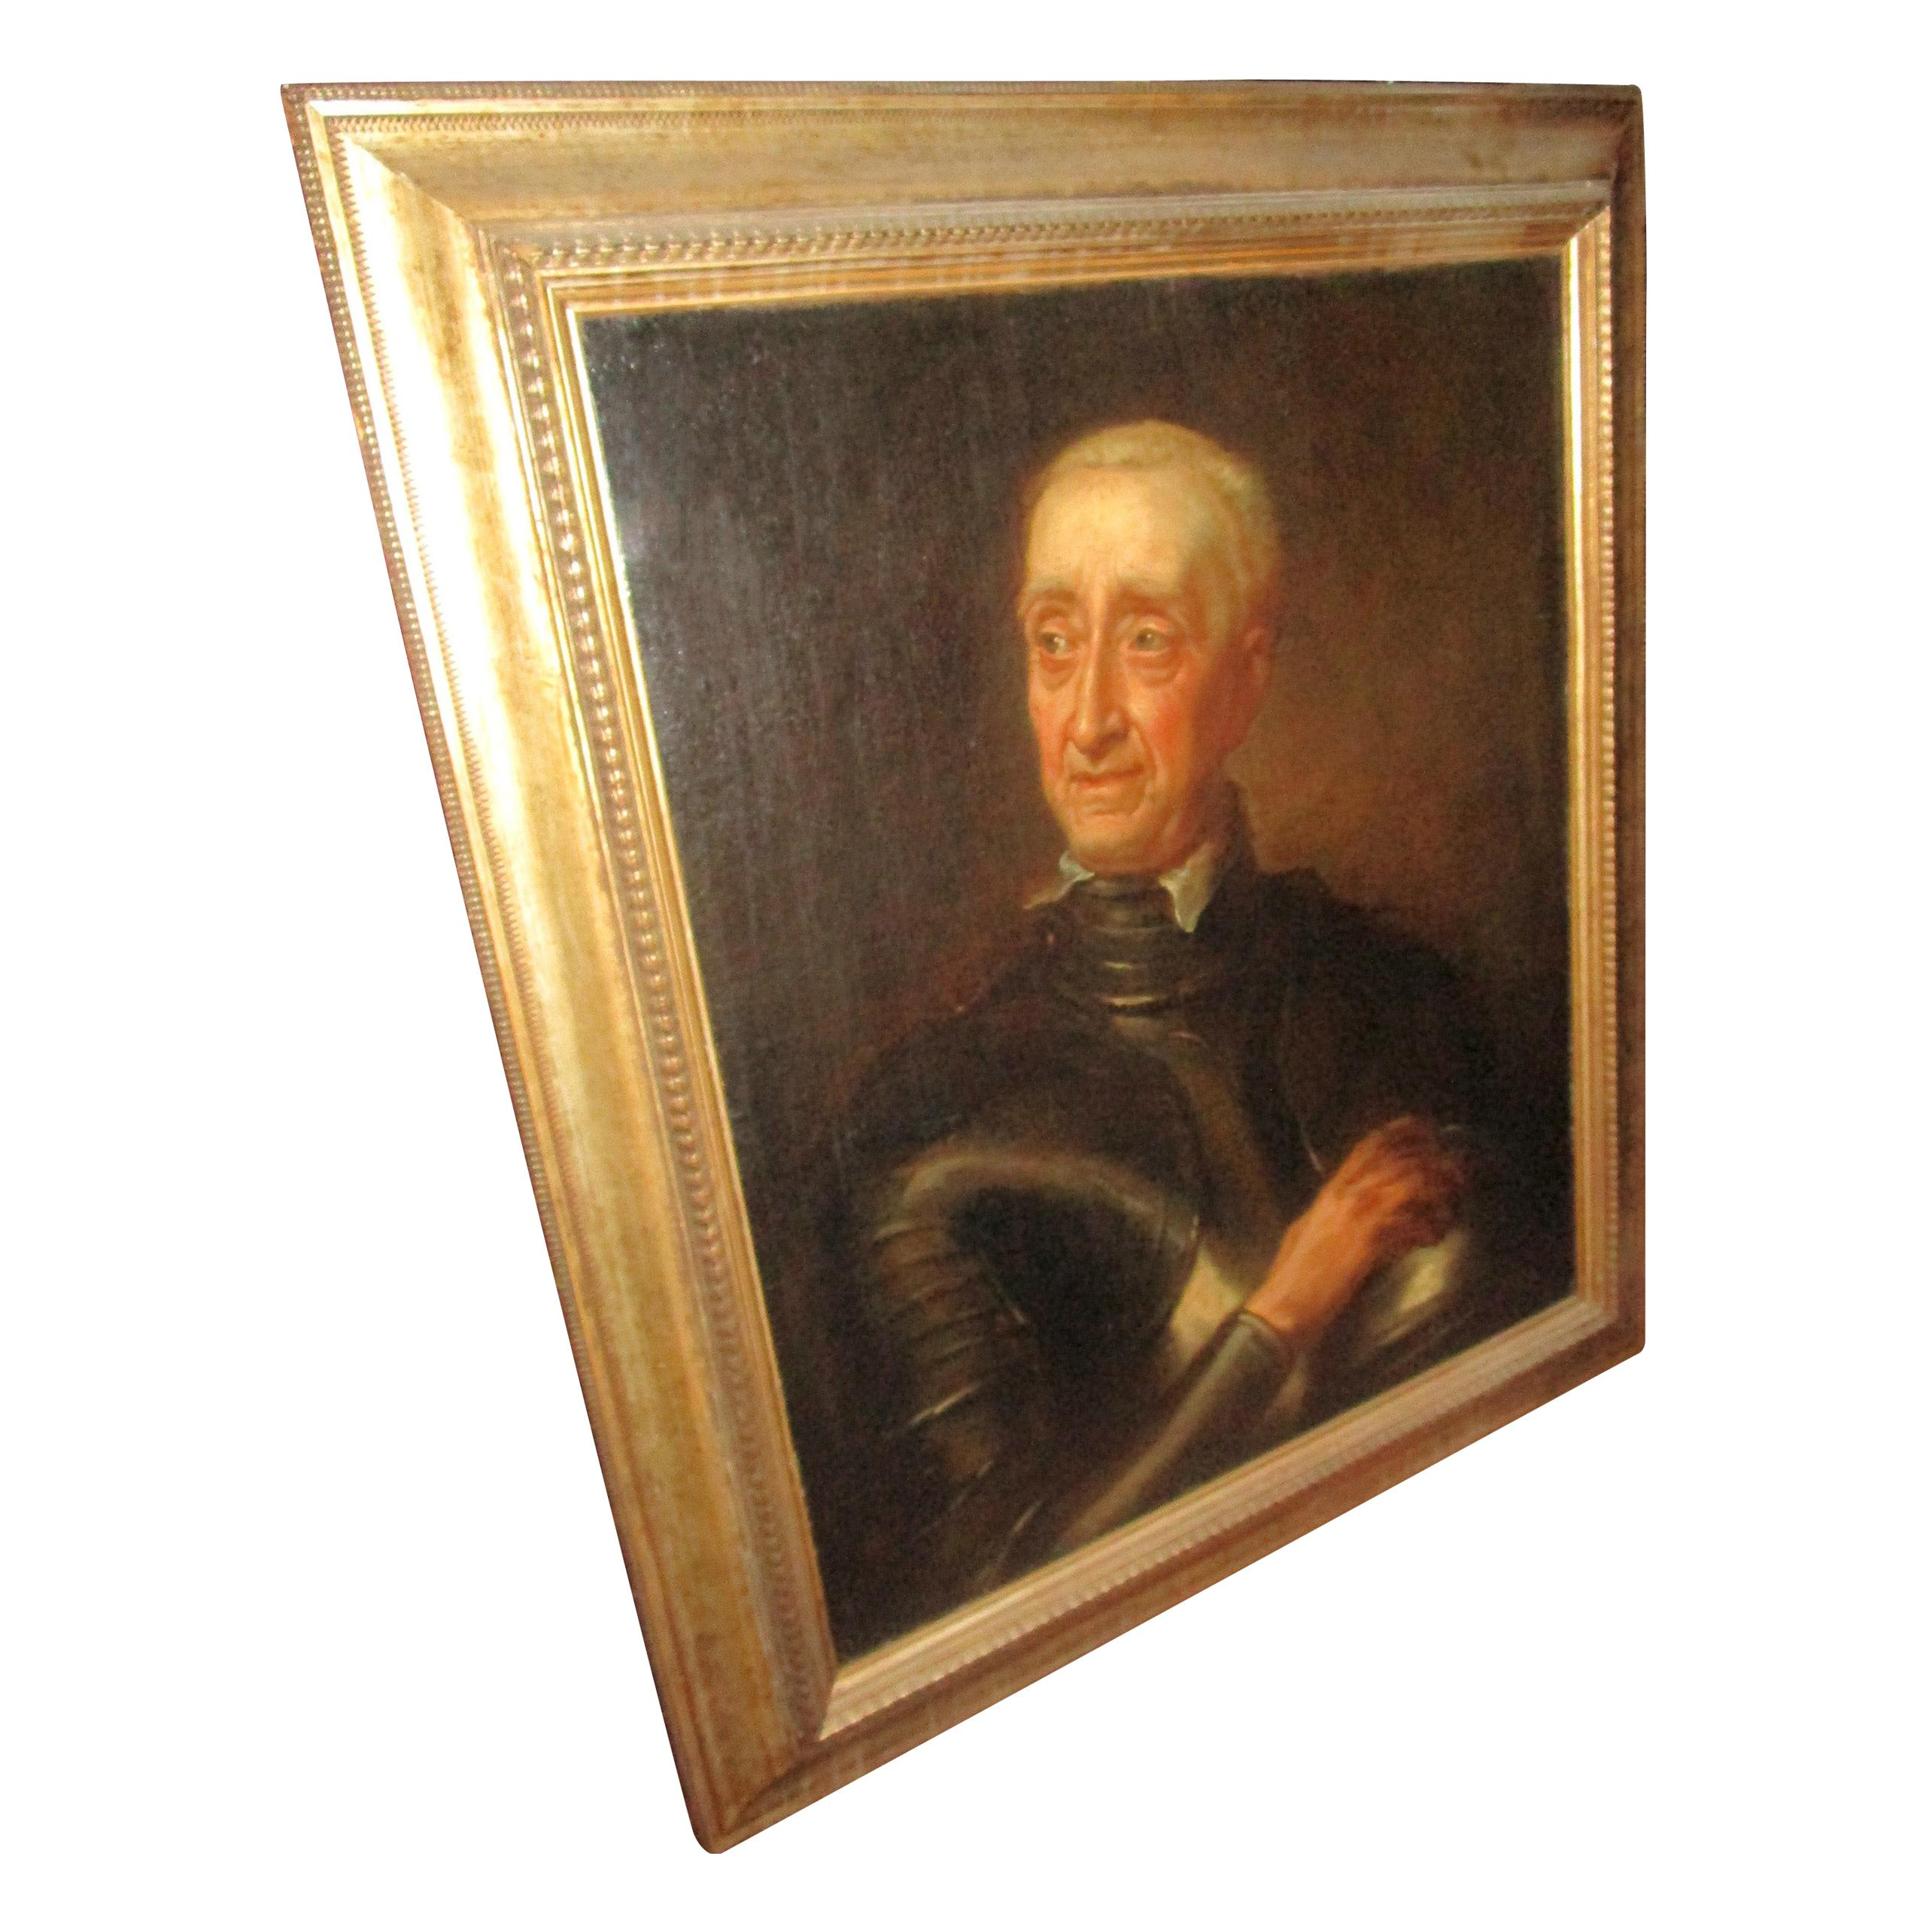 Gentleman Dressed in Armour Framed Oil on Canvas